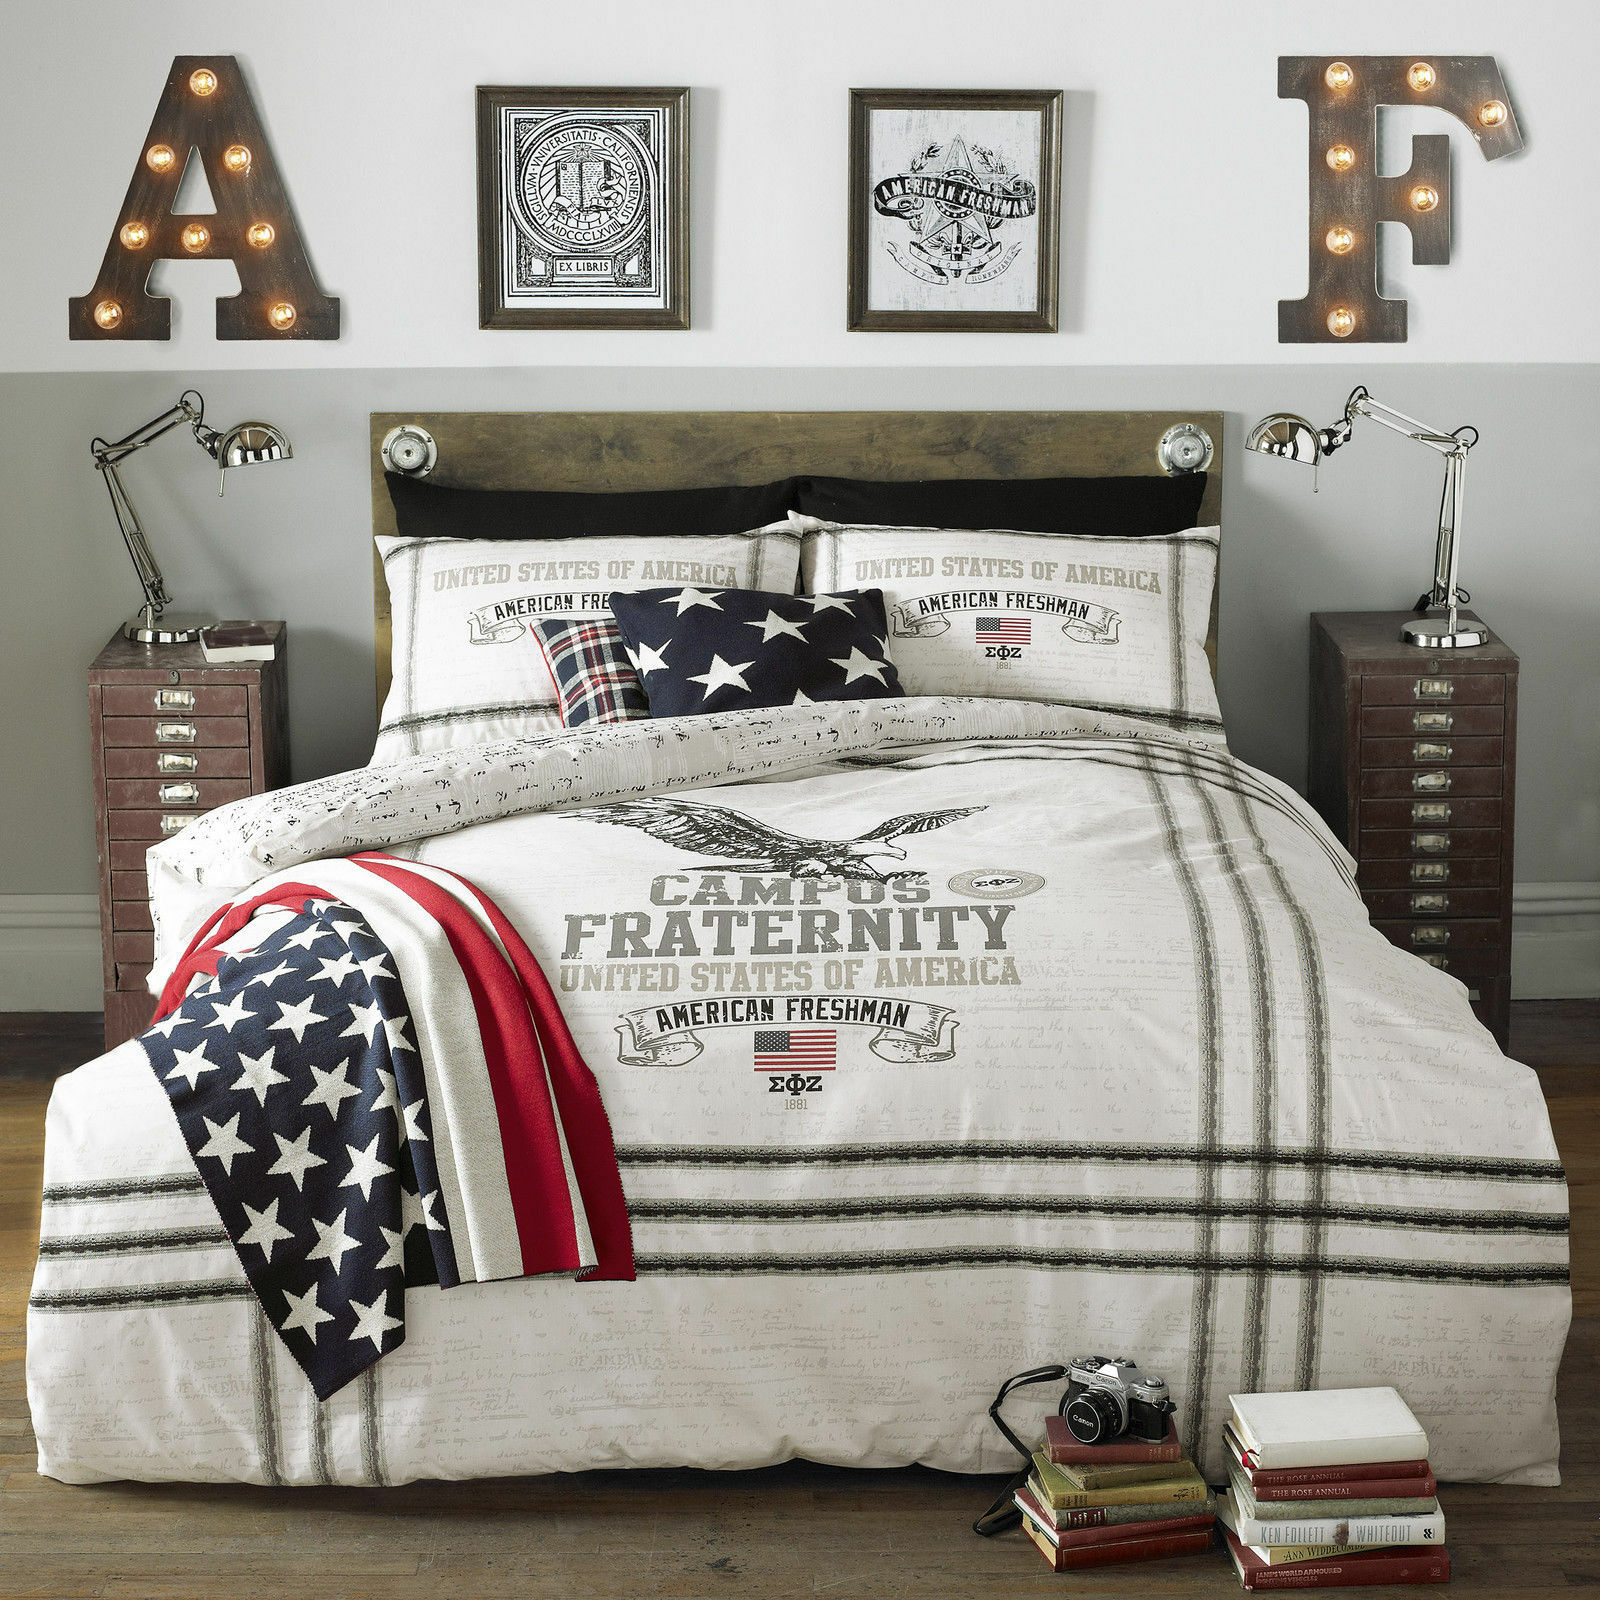 Eagle Bed Linen by American Freshman ... 10% OFF  + Free Delivery